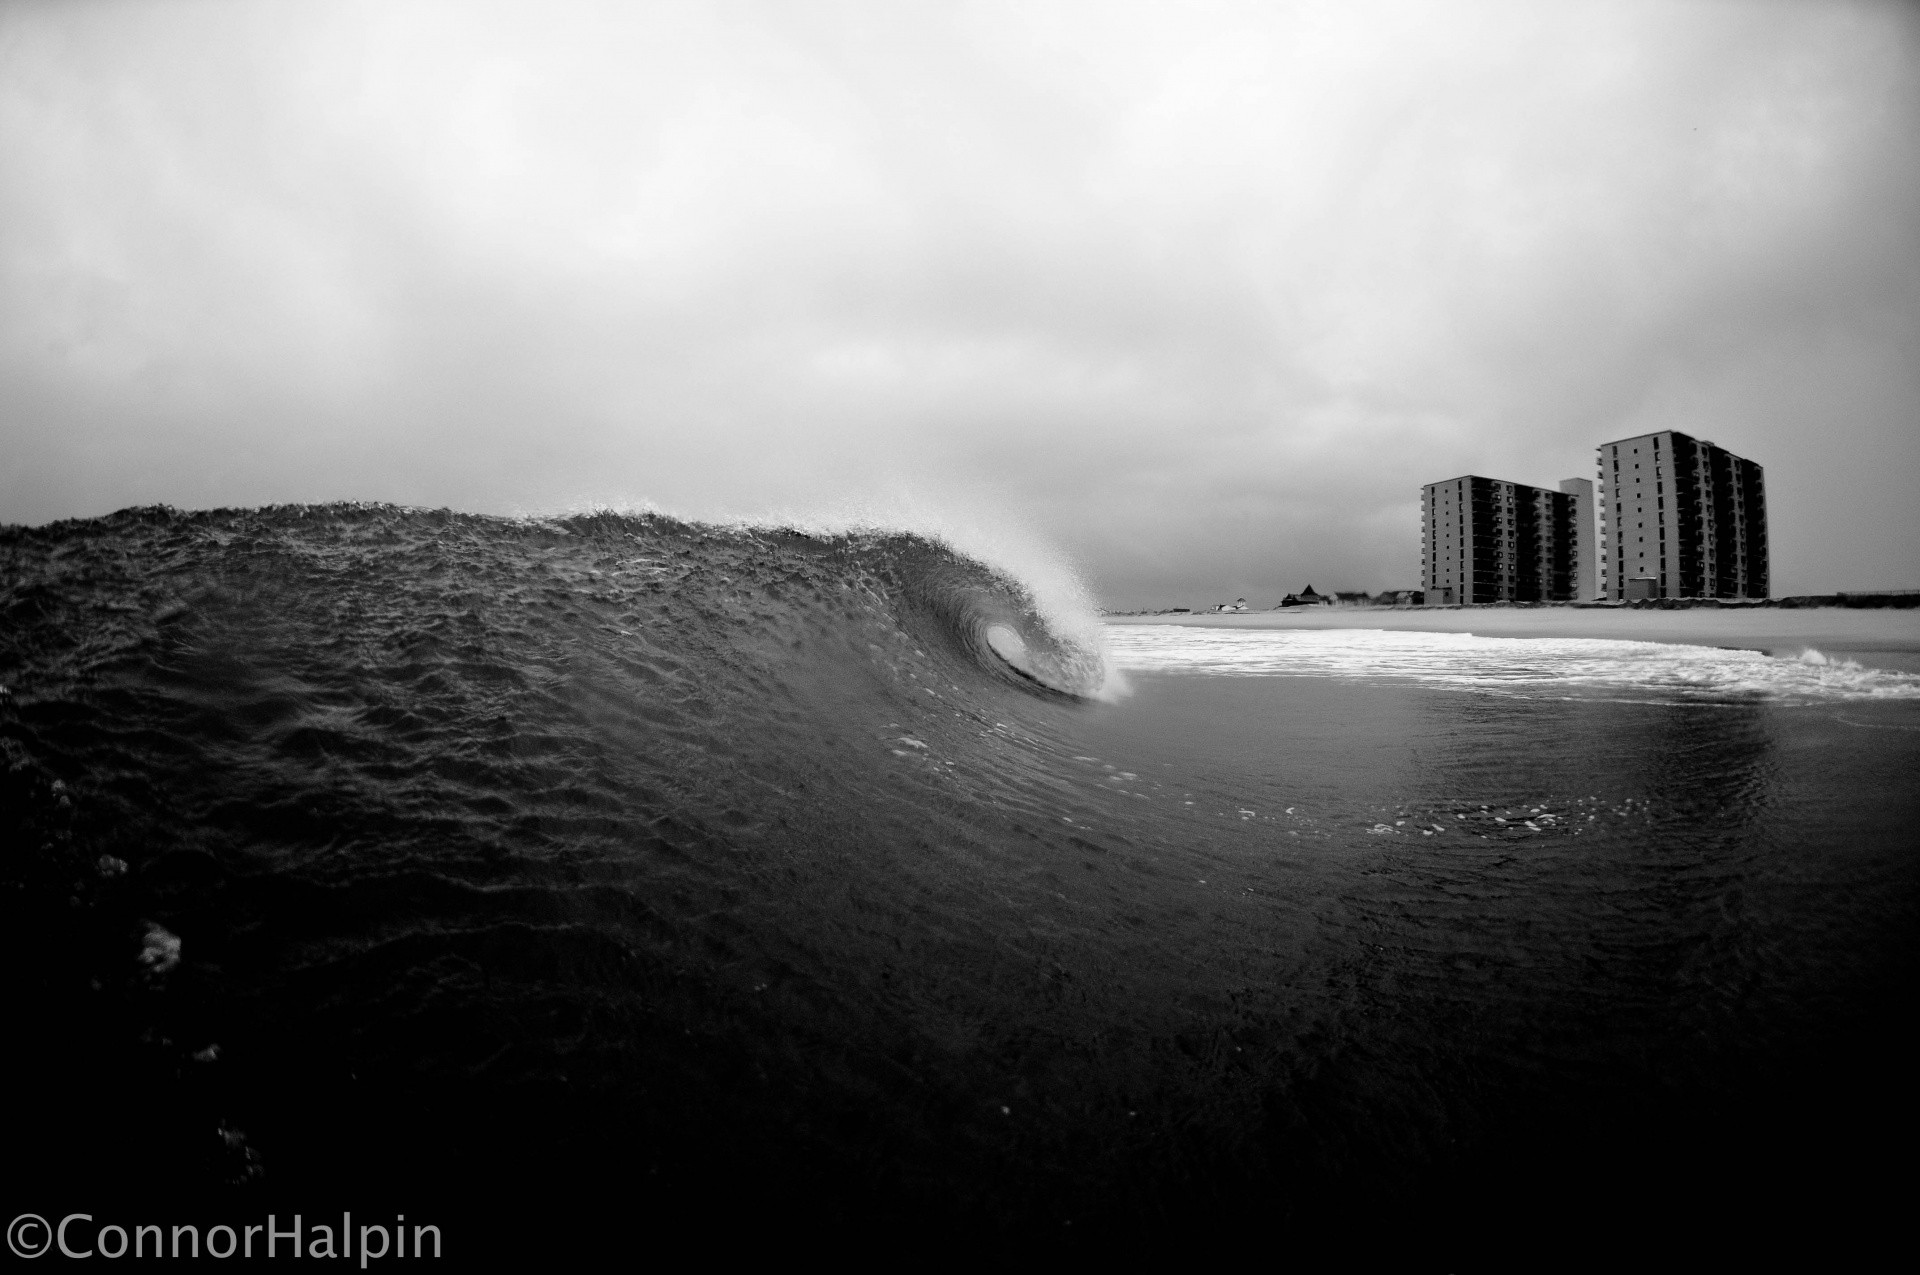 Connor Halpin's photo of Asbury Park